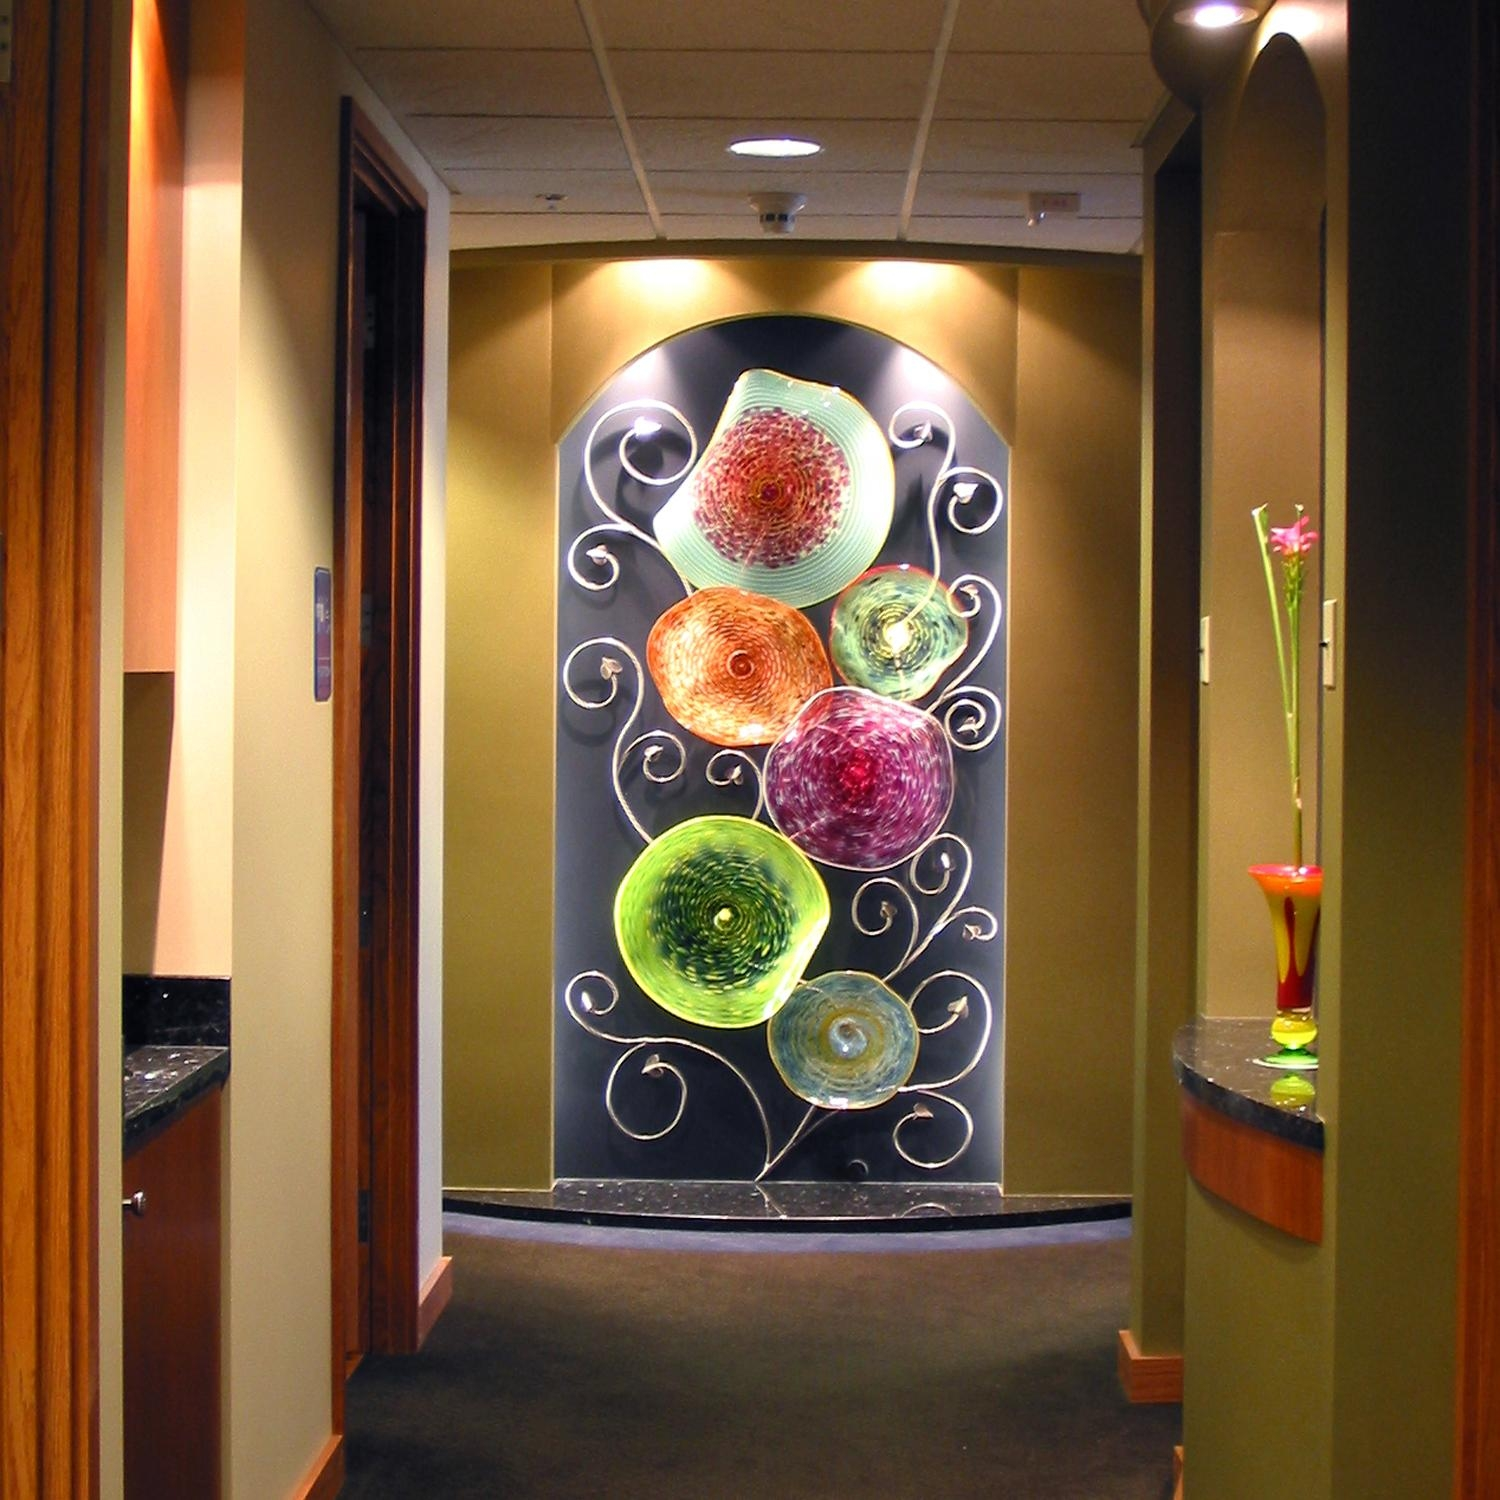 Hand Blown Glass Wall Art Sculpture | Artisan Crafted Home Inside Glass Wall Art For Sale (Image 5 of 20)